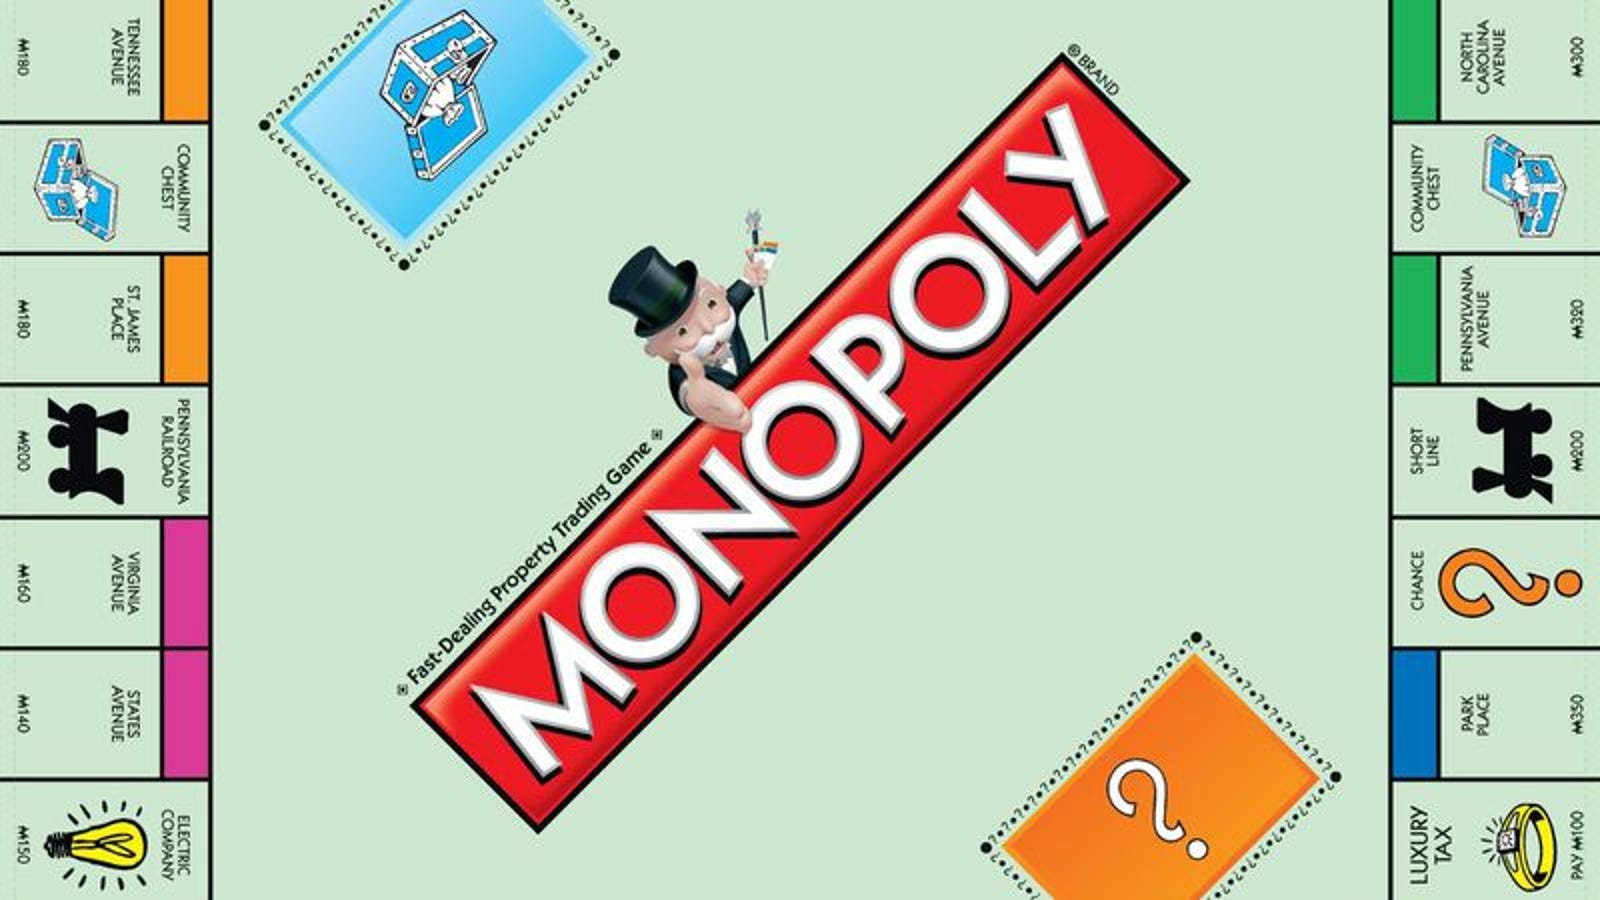 Accommodating playmonopoly us